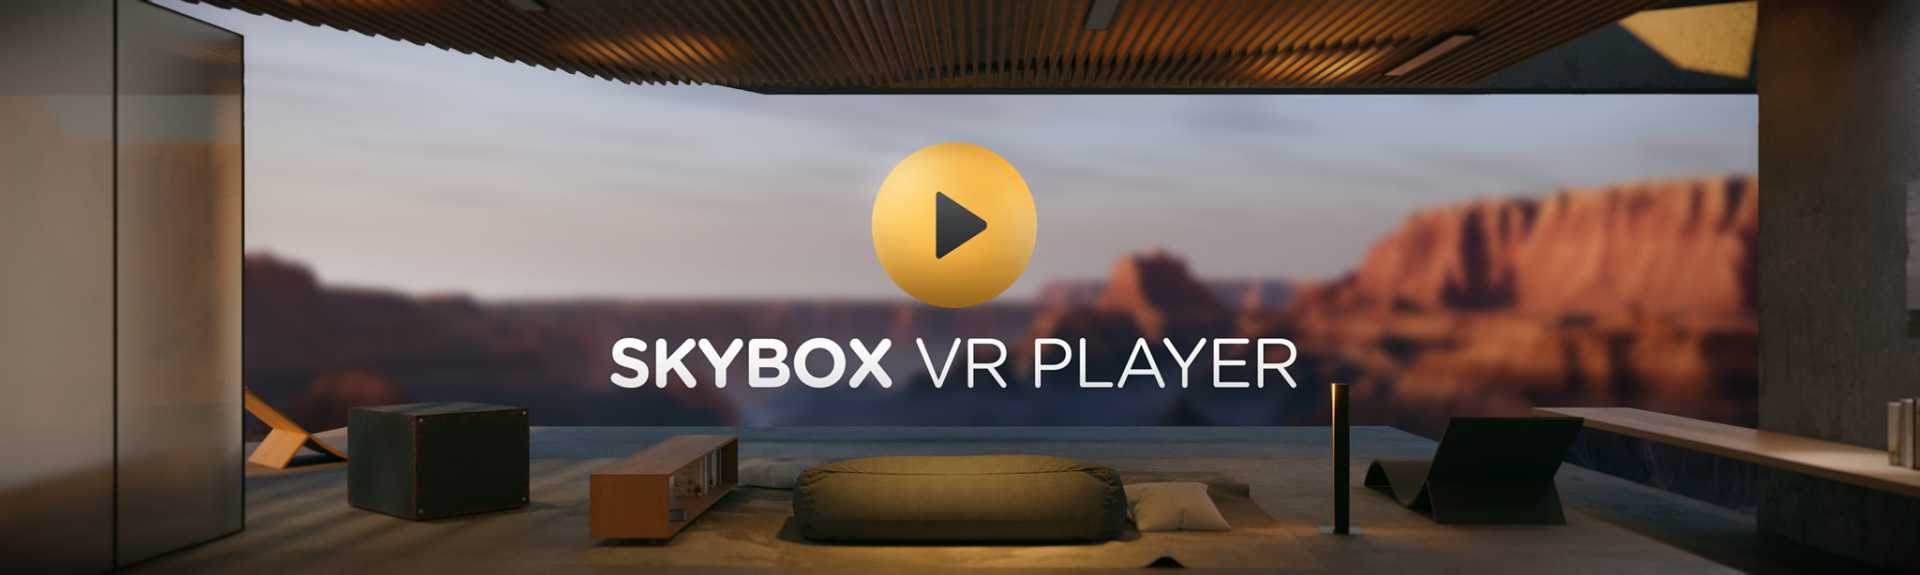 SKYBOX VR Video Player